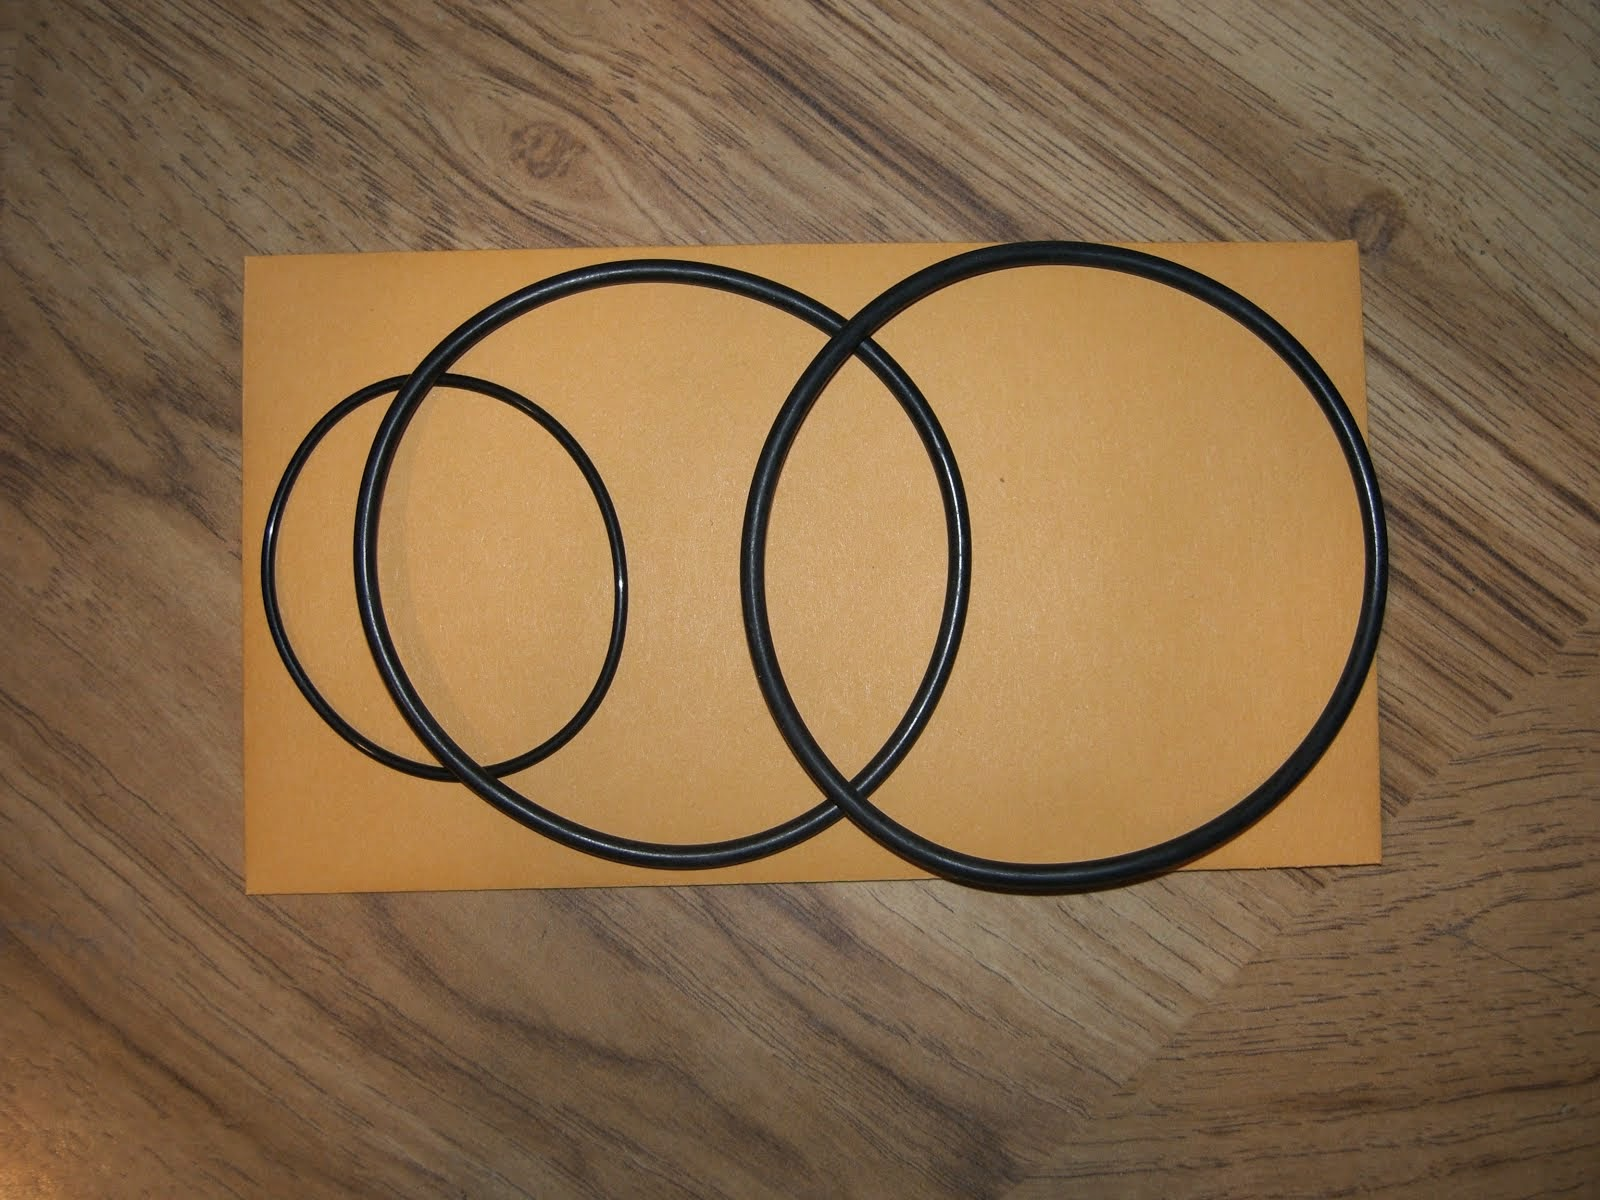 HONDA CA72 CA77 CB77 CL77 (LATER MODEL) OIL FILTER GASKET O-RING KIT (CB-FG002)